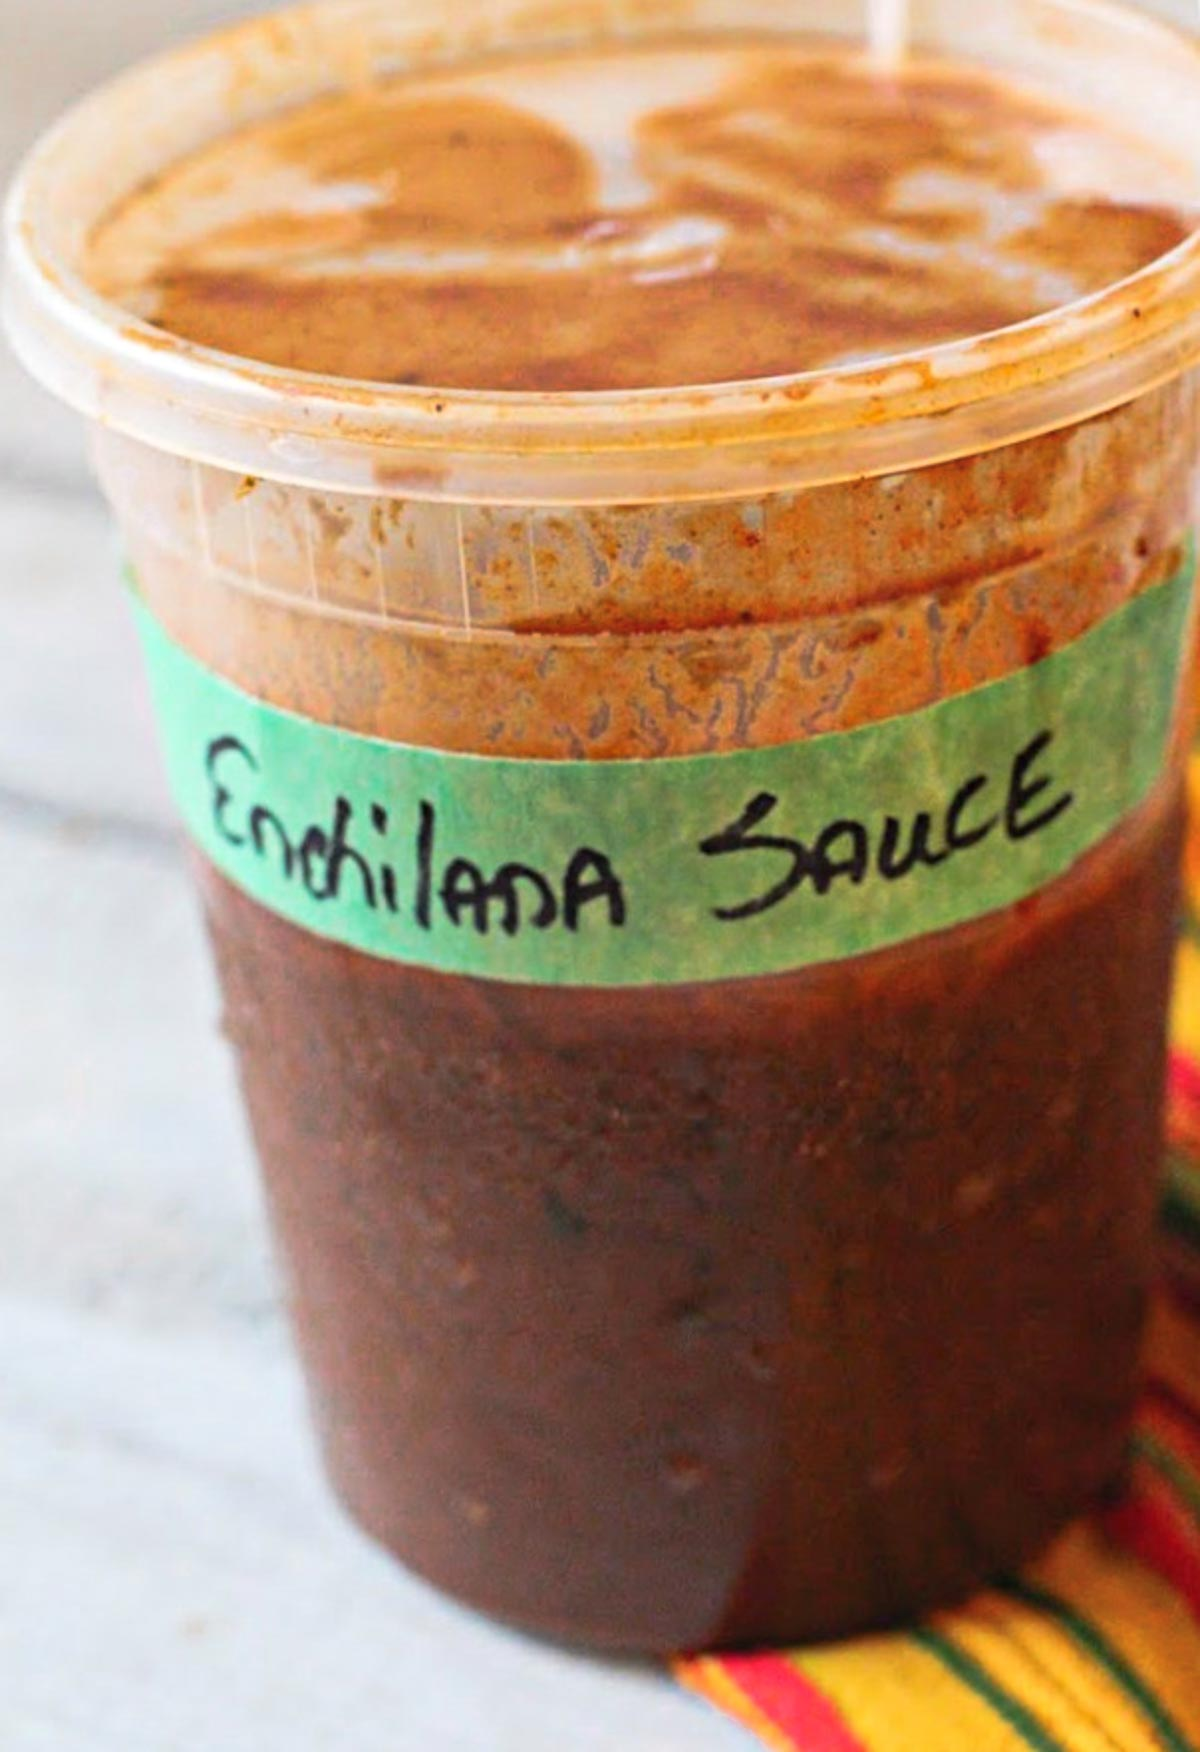 Homemade enchilada sauce stored in a deli container